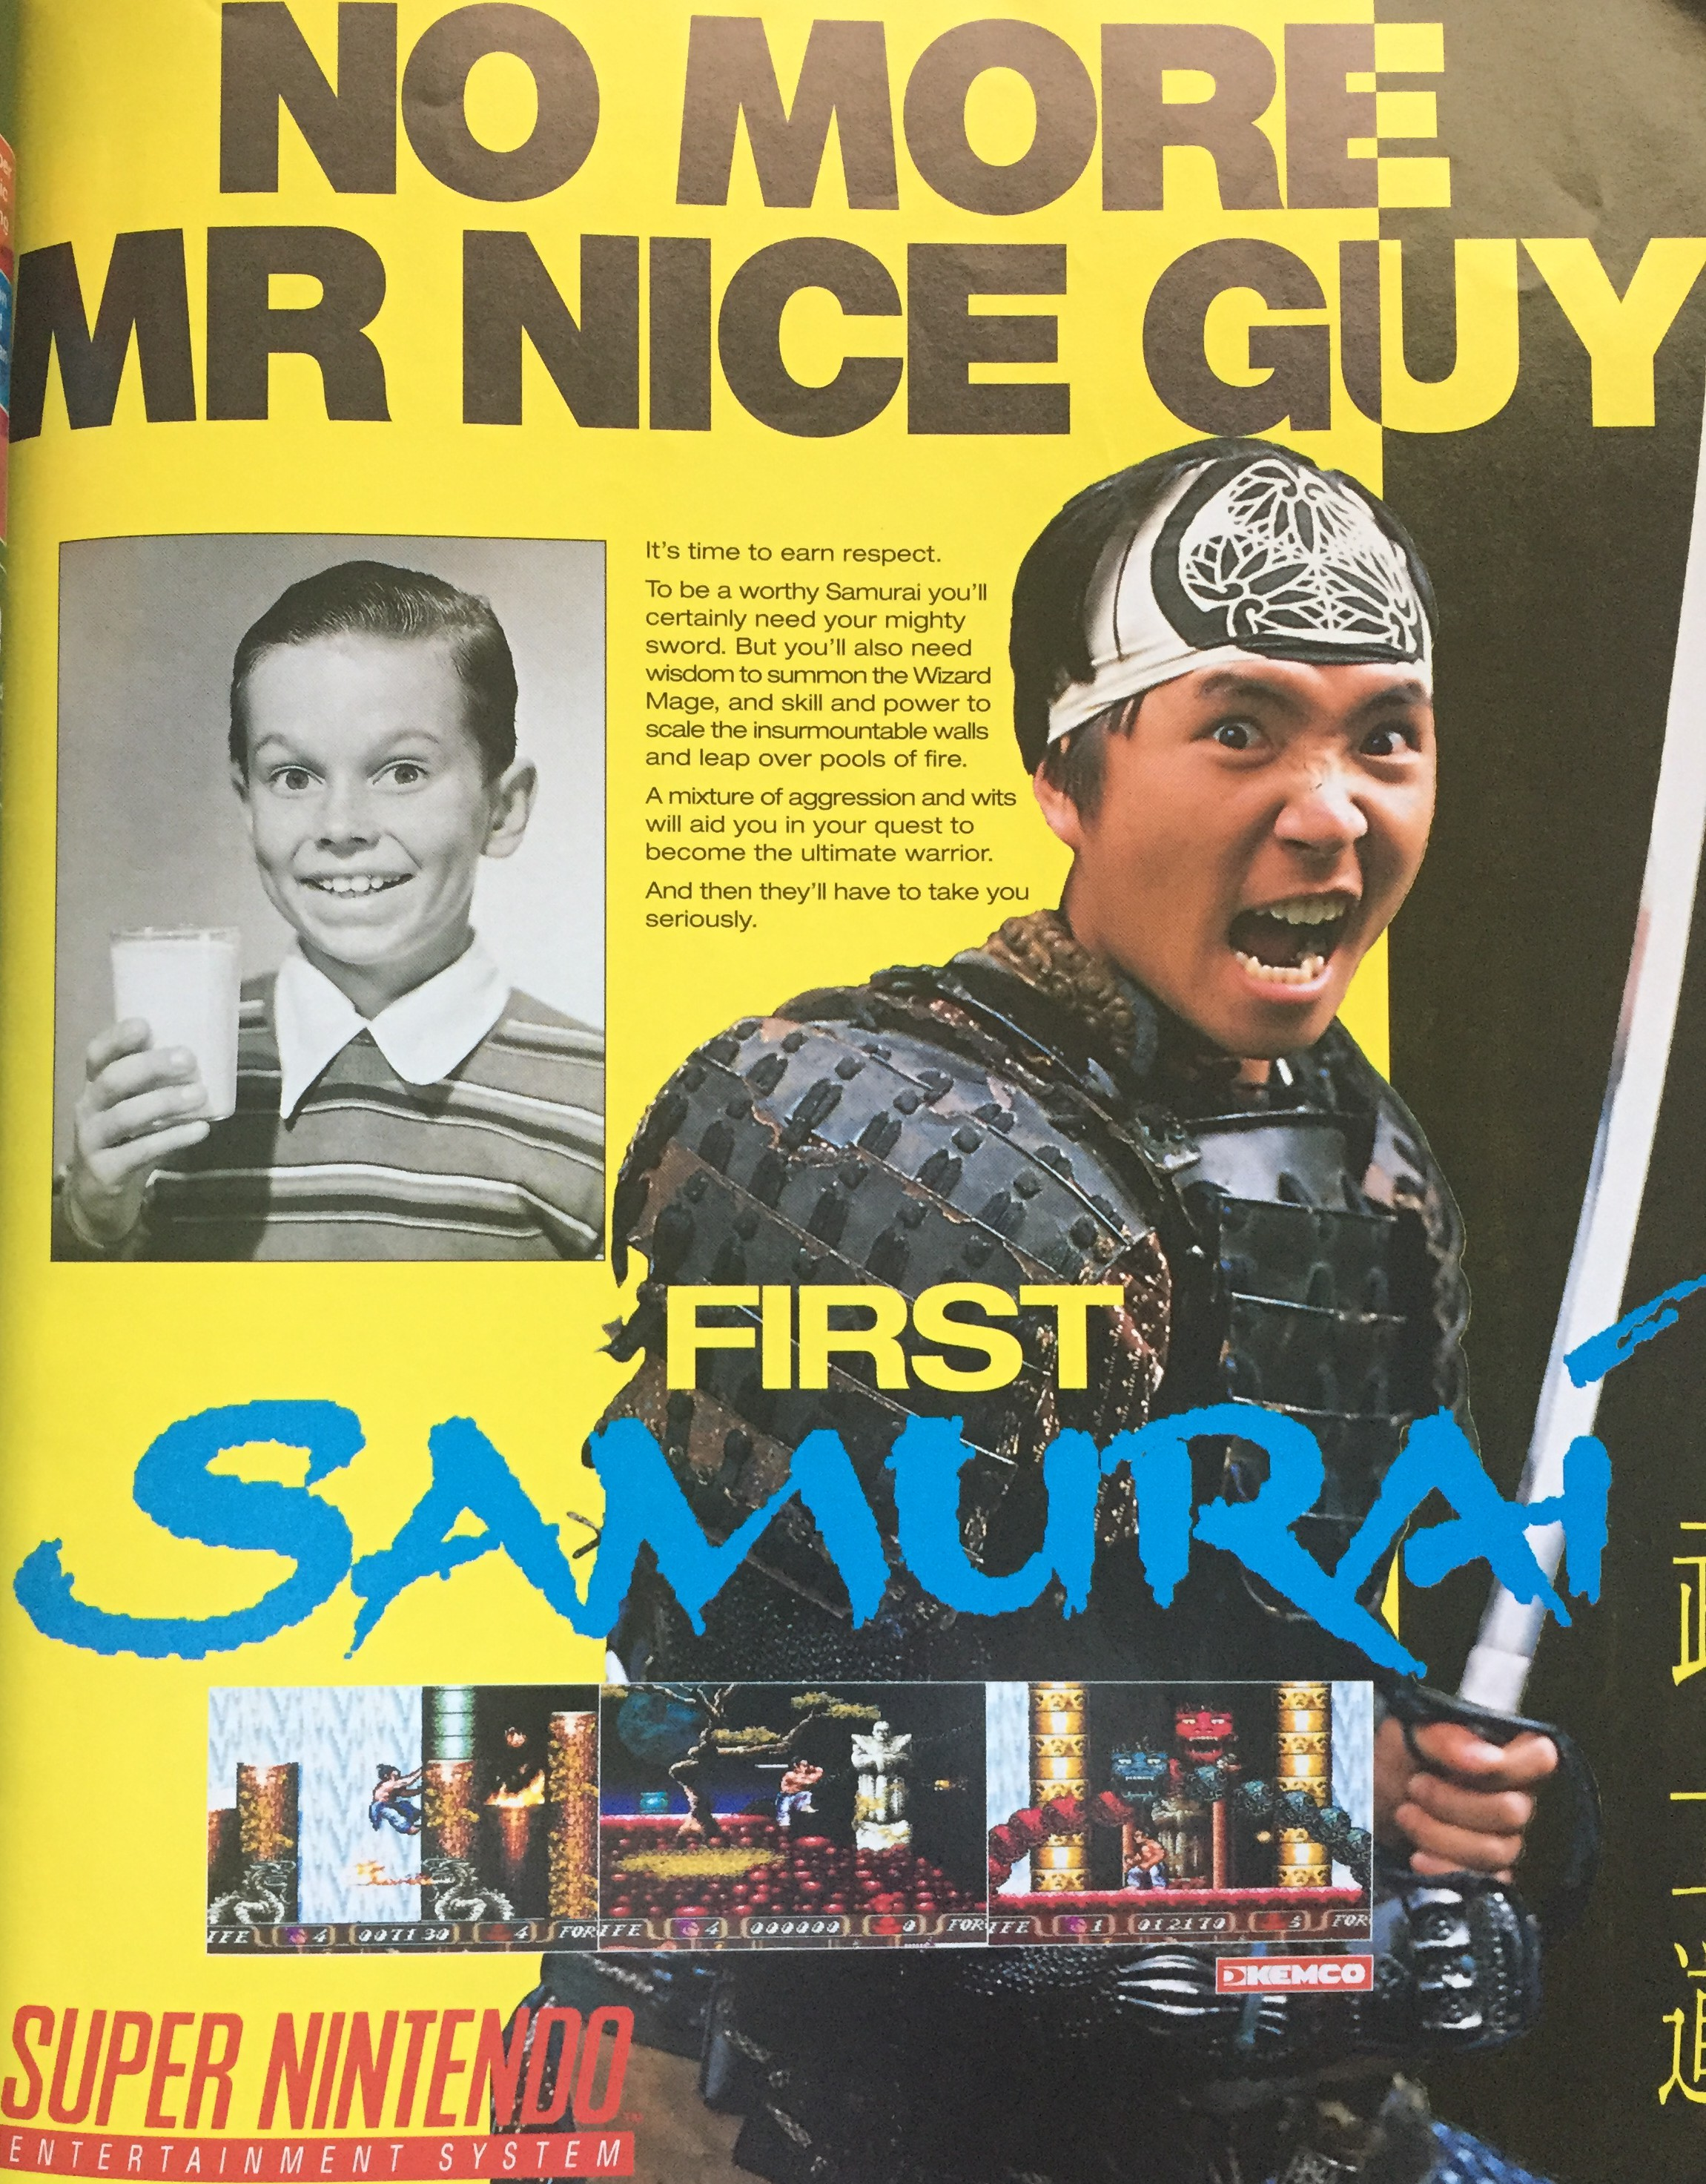 Not as bad as the European ad for First Samurai! Yikes